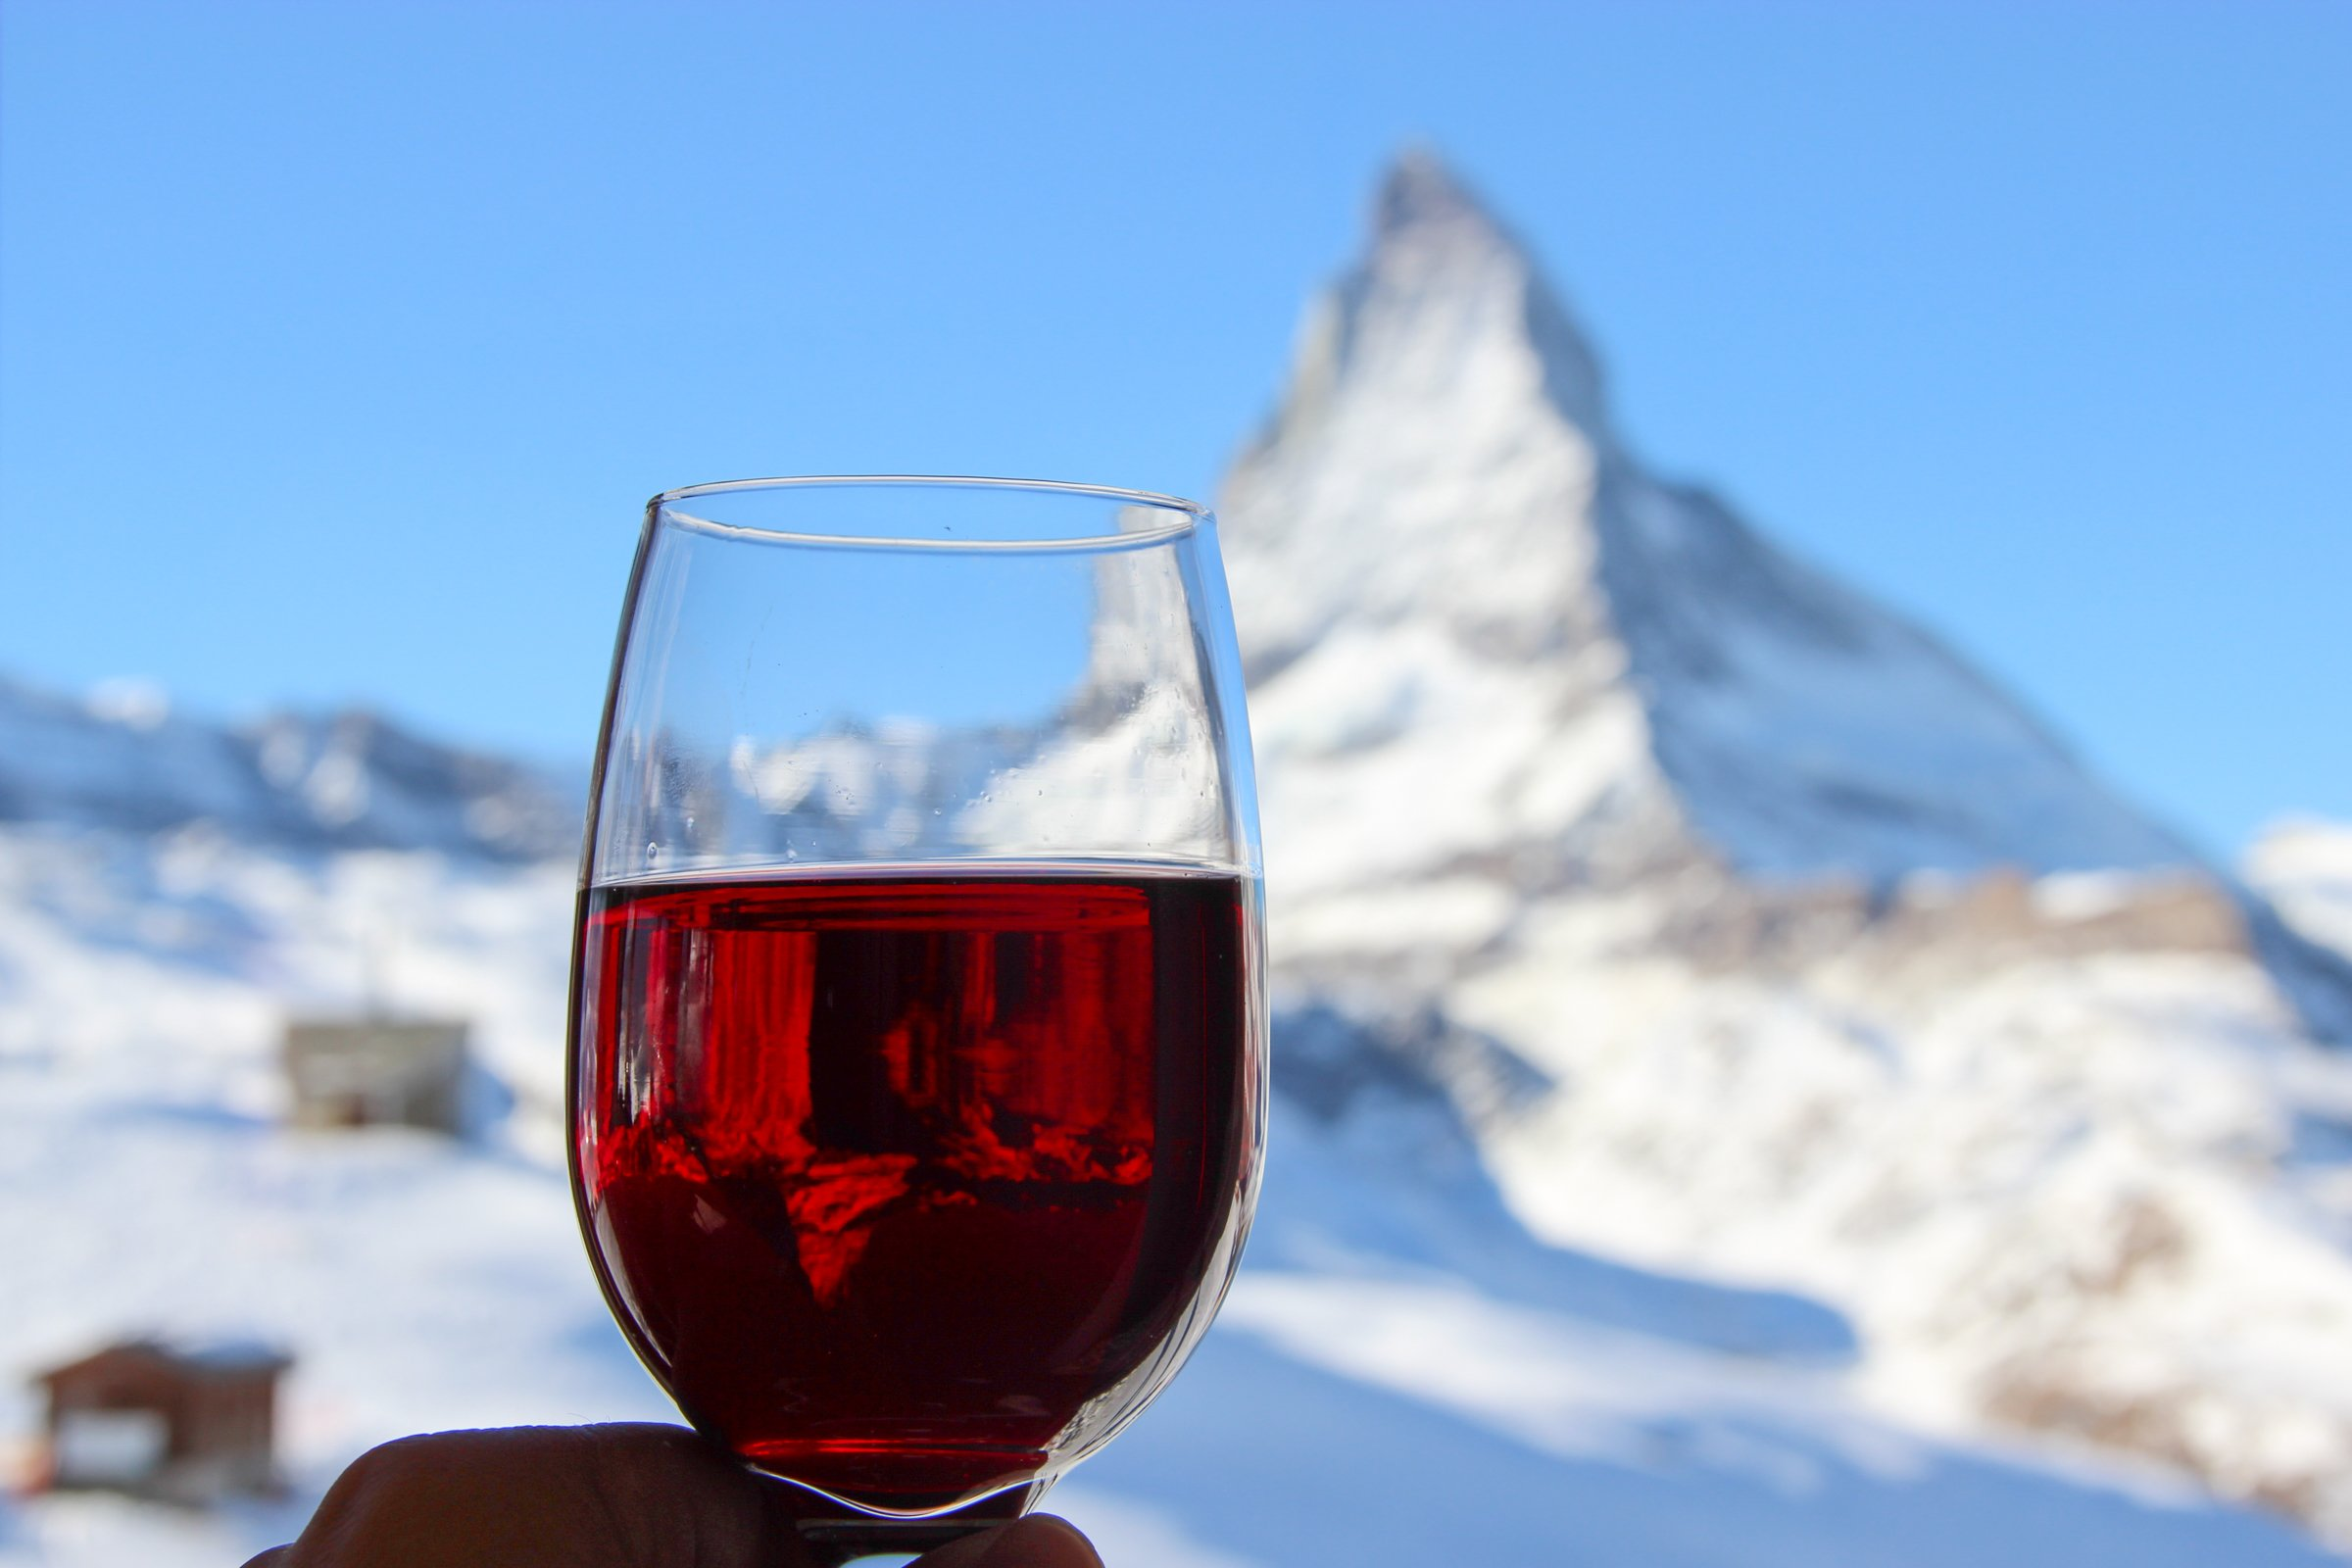 193cb088b402 Free Stock Photo of Glass of Red Wine with Snowy Mountain in Background